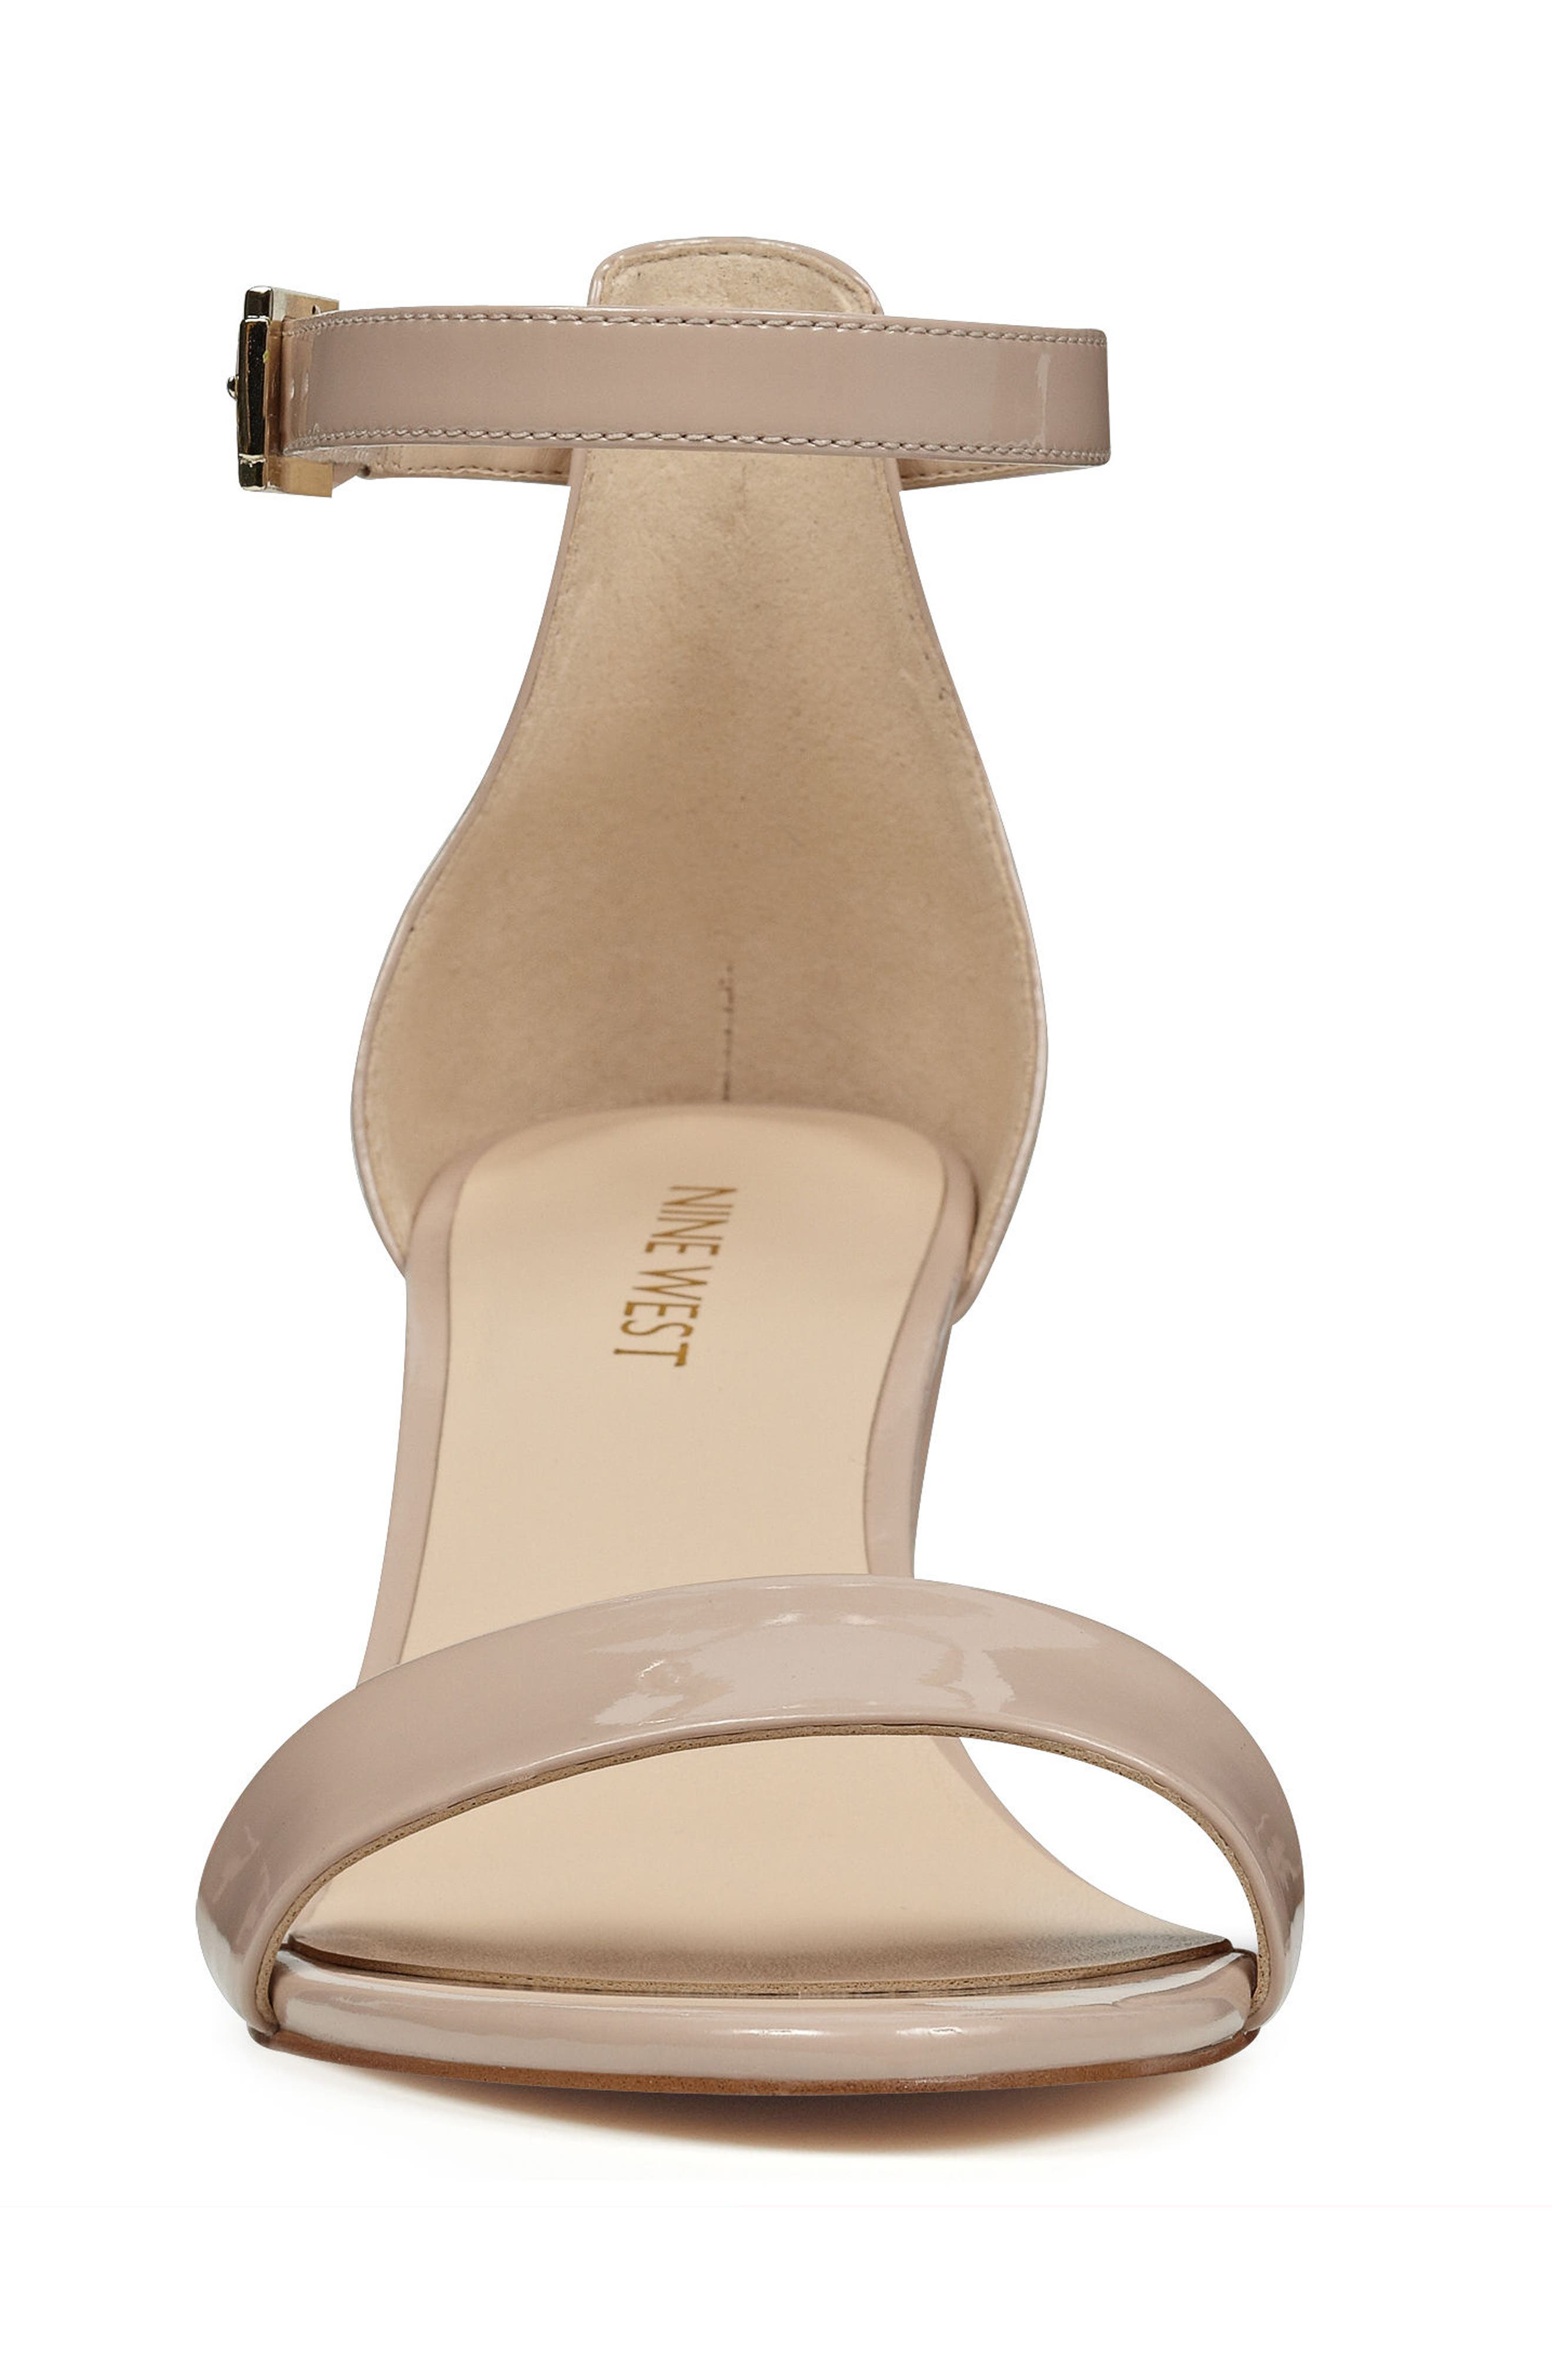 Pruce Ankle Strap Sandal,                             Alternate thumbnail 3, color,                             Natural Patent